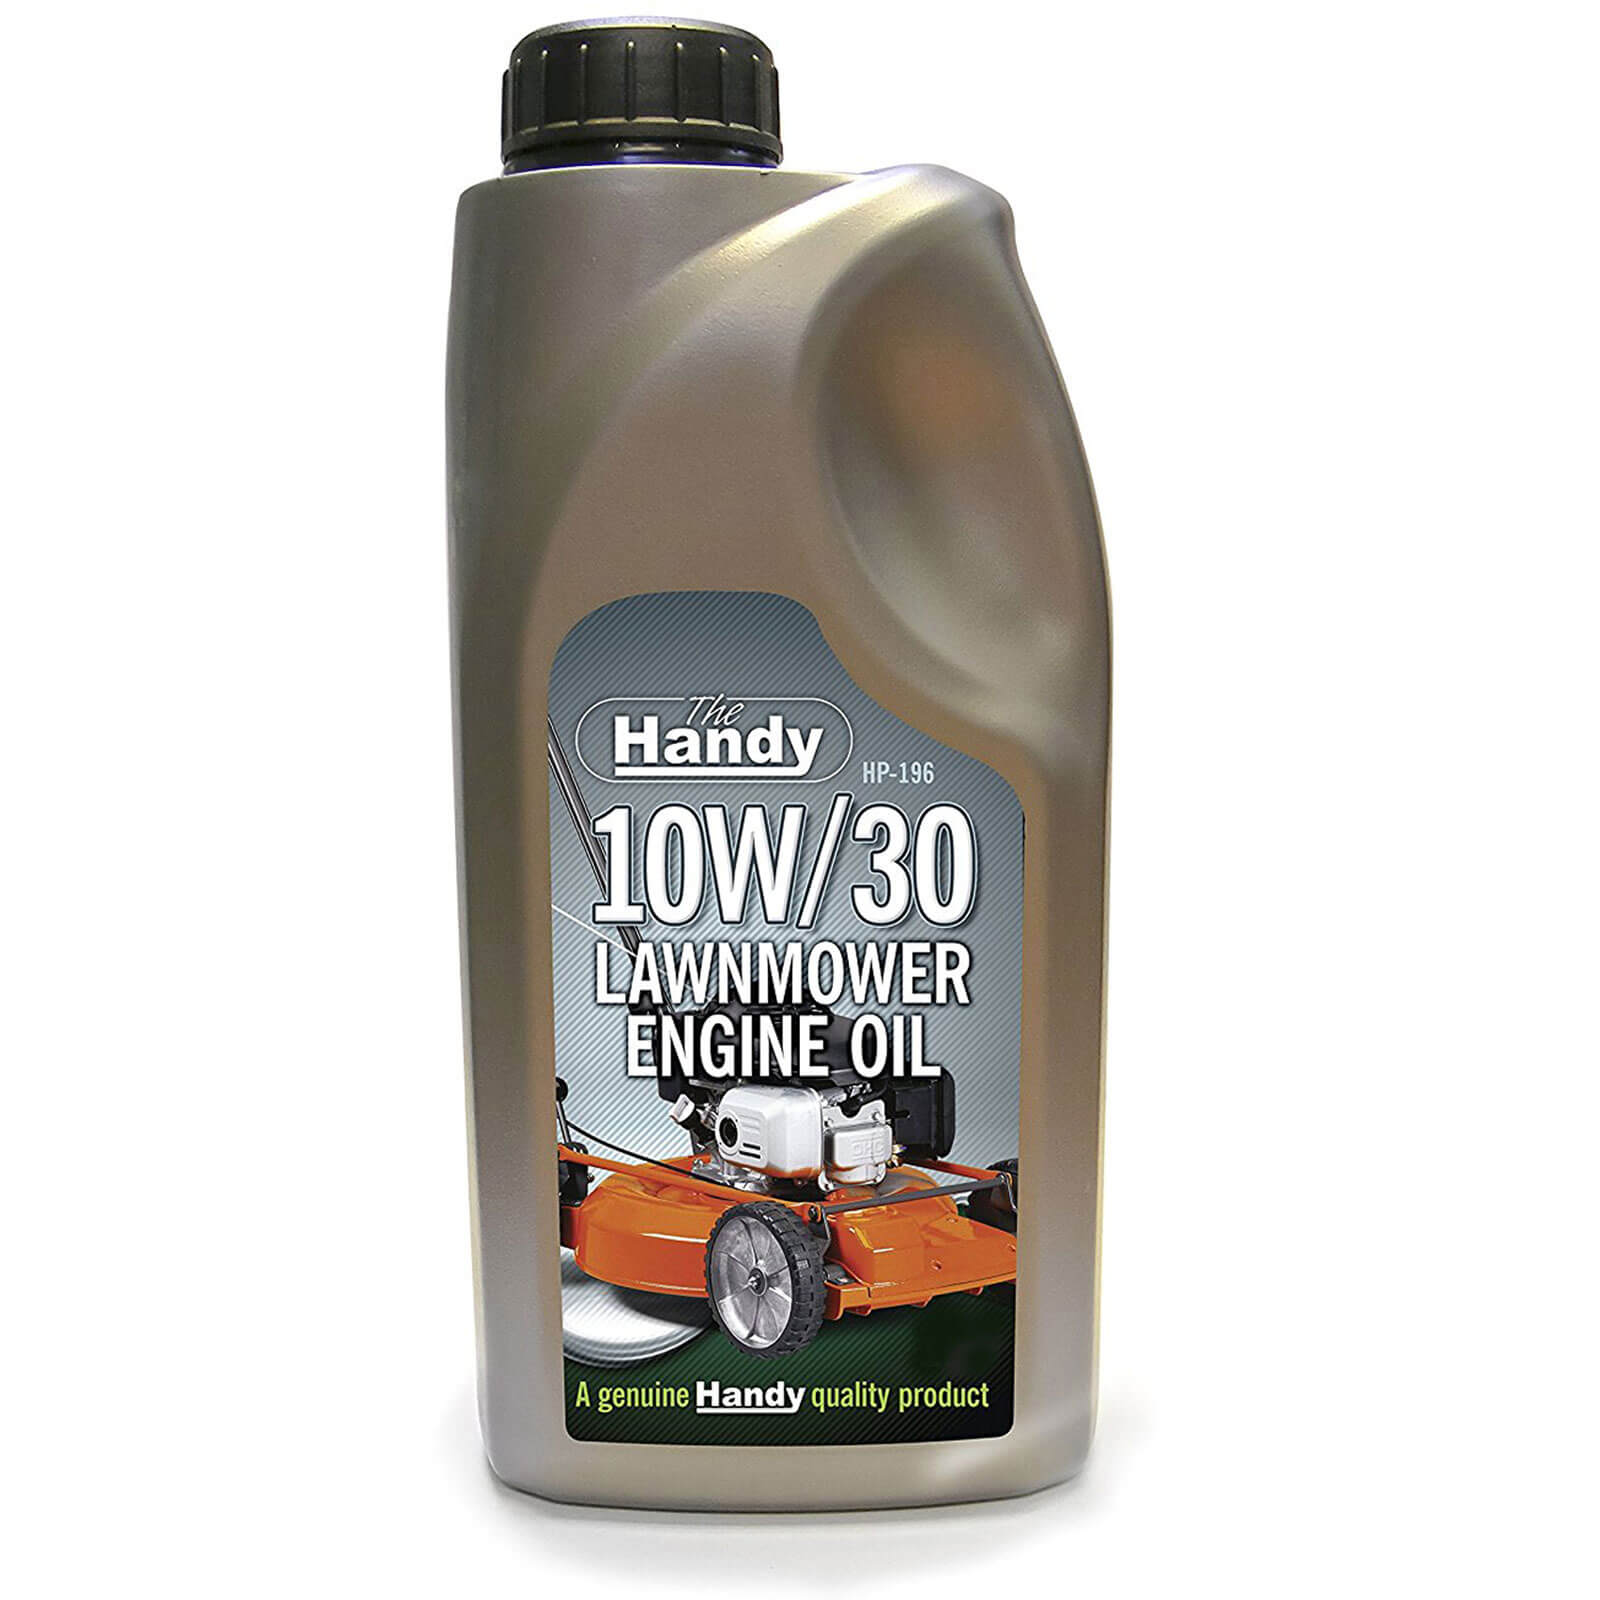 Image of Handy 10W/30 Lawnmower Engine Oil 600ml